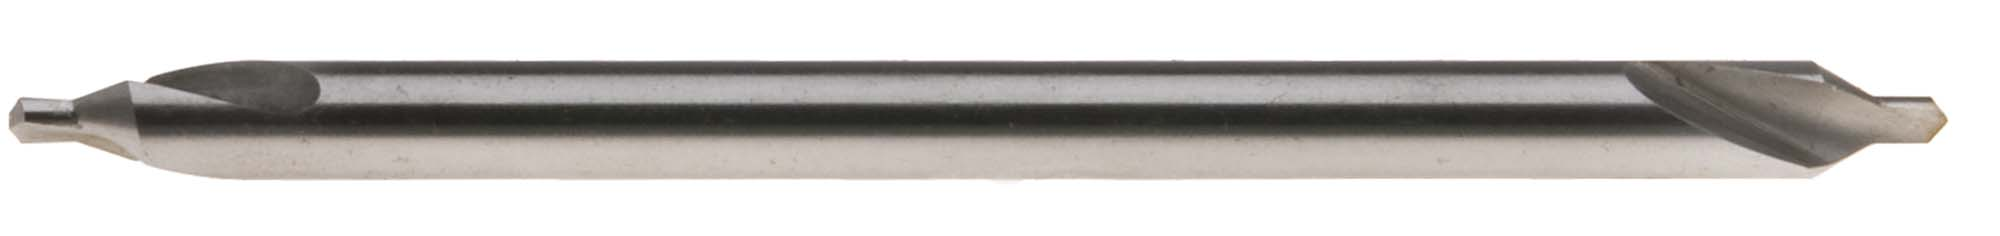 "CDL-2-5  #2x5"" Long Combined Drill and Countersink, High Speed Steel"